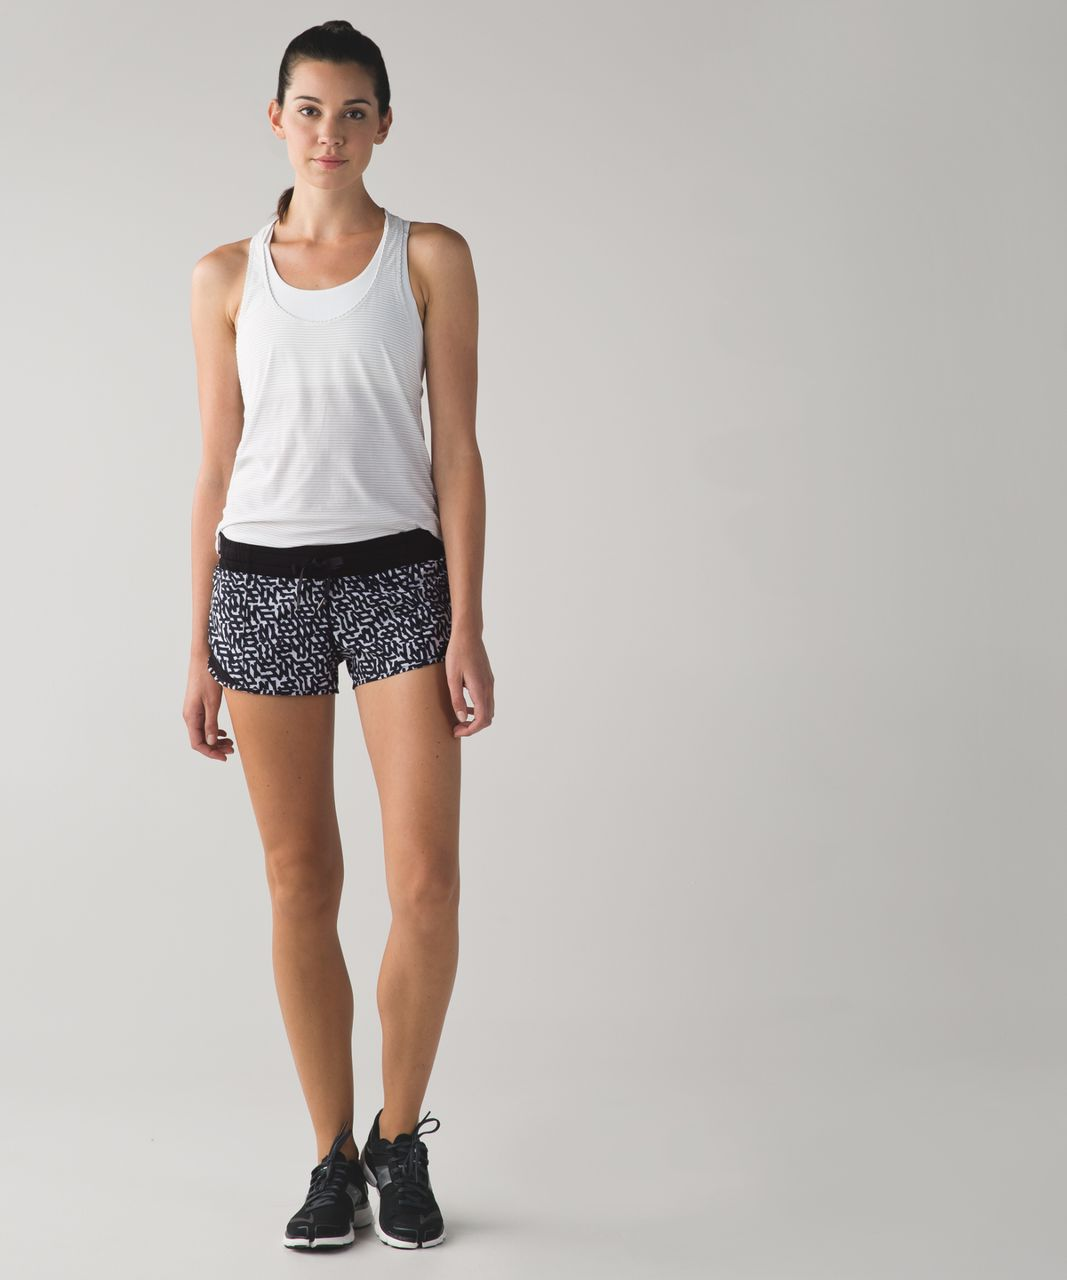 Lululemon Hotty Hot Short - Net Pop White Black / Black